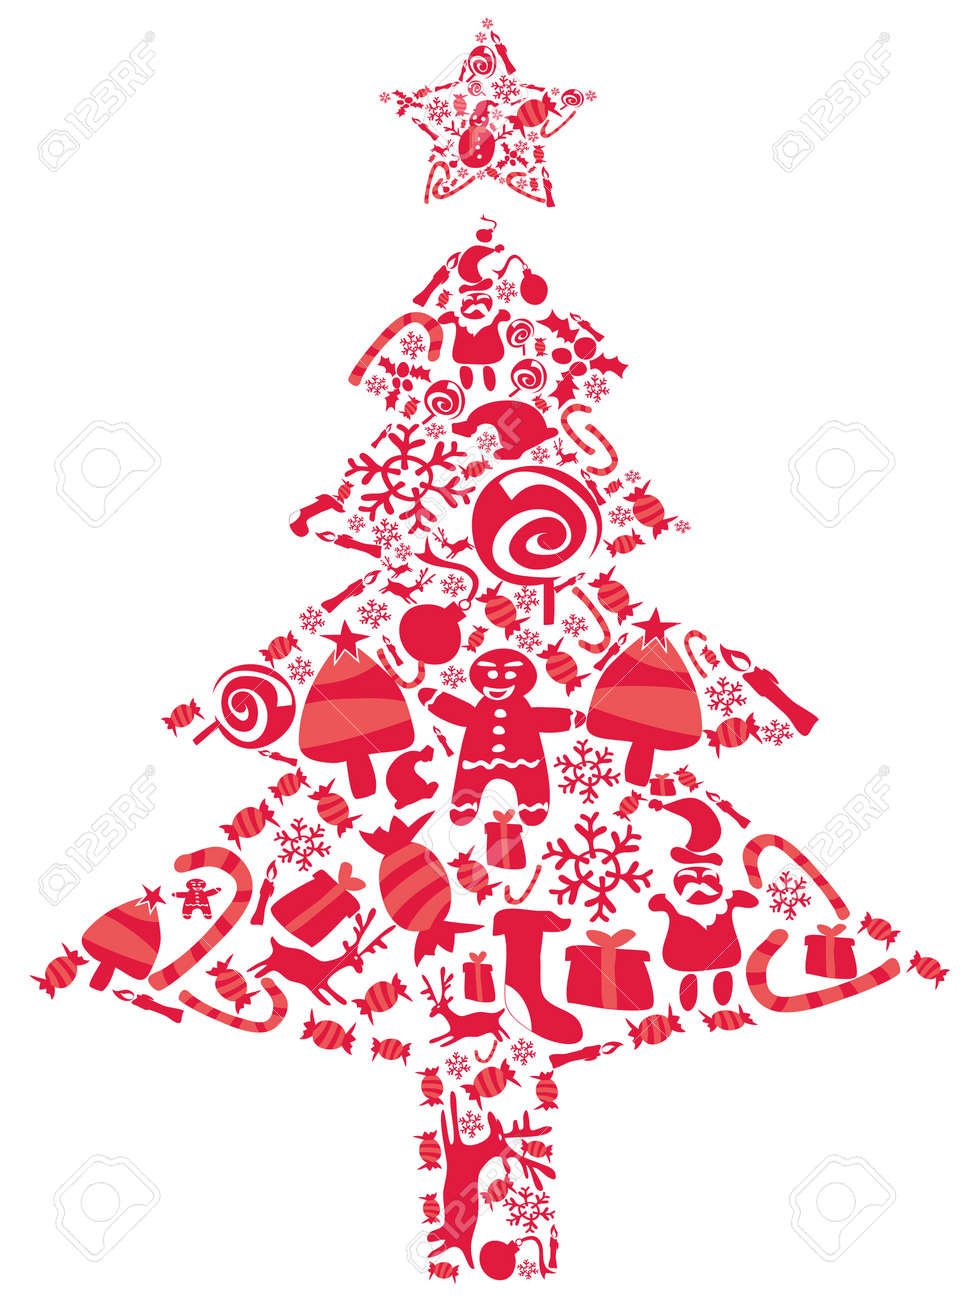 Christmas Tree Icons.Ornate Christmas Tree Filled With Red Christmas Icons